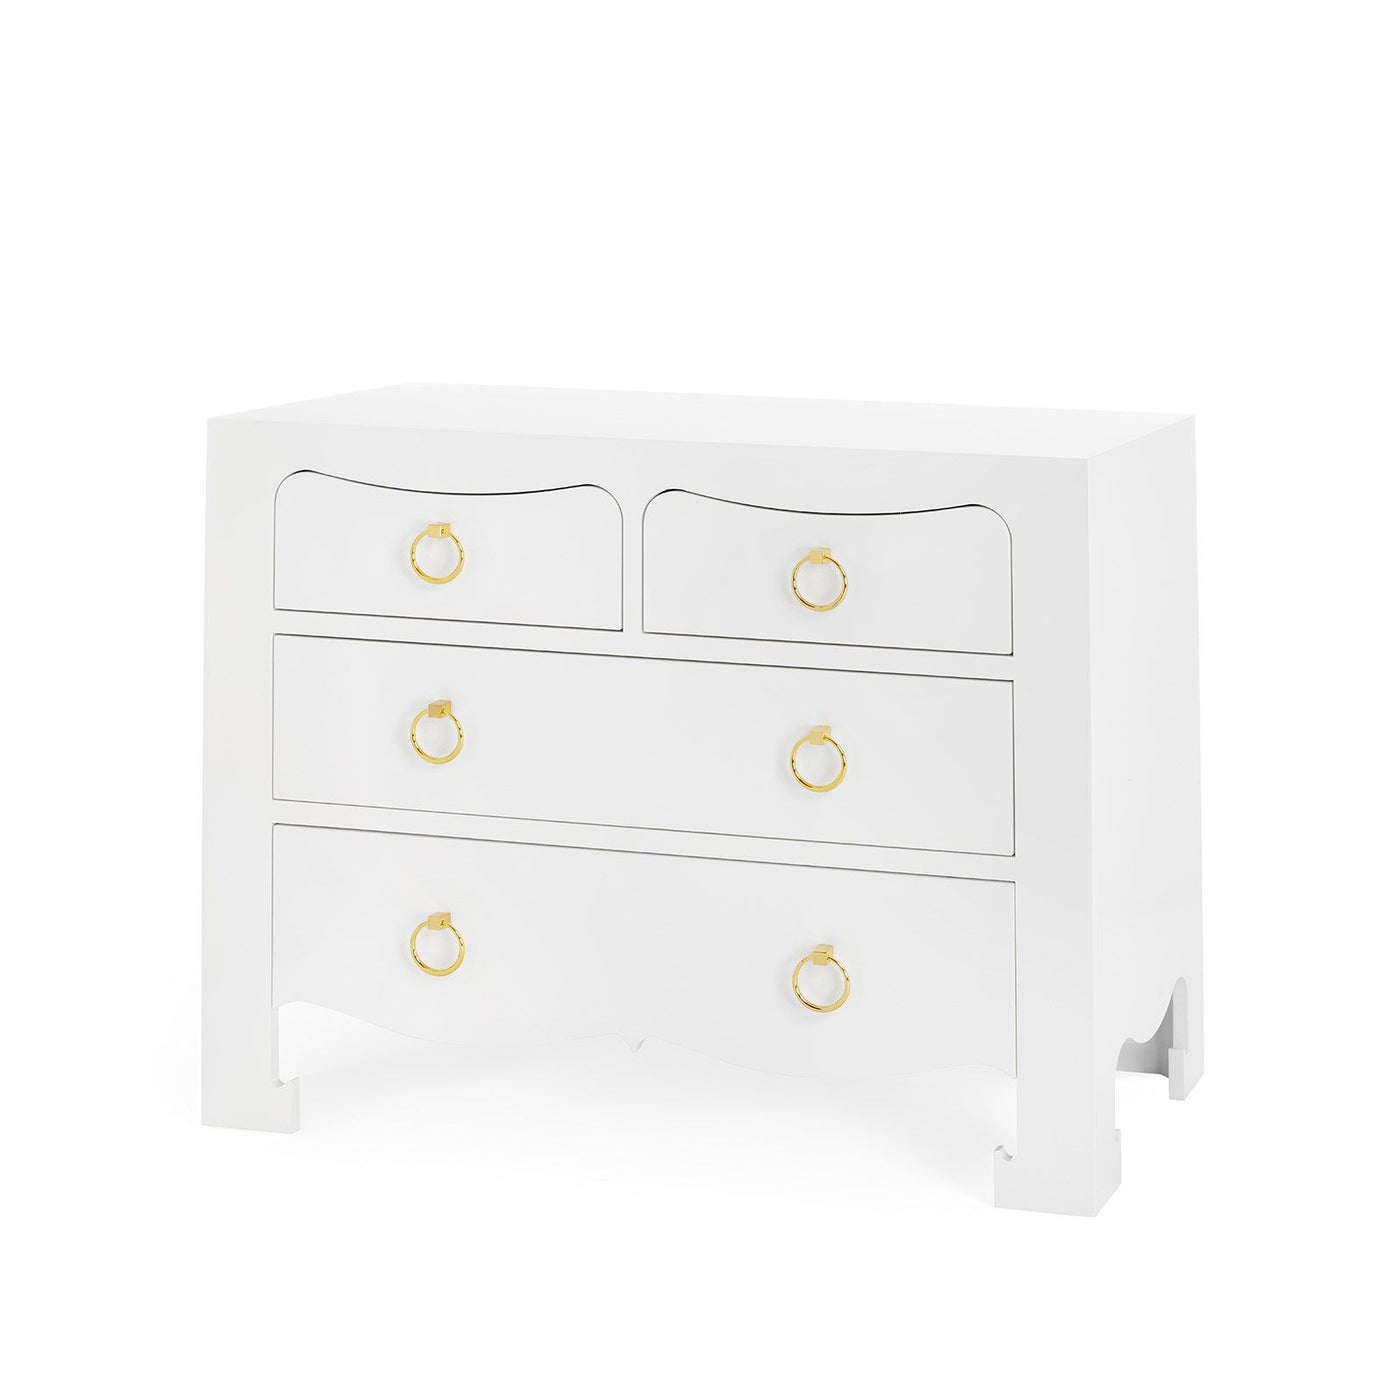 Bungalow 5 Jacqui Large 4 Drawer Chest White JAC-225